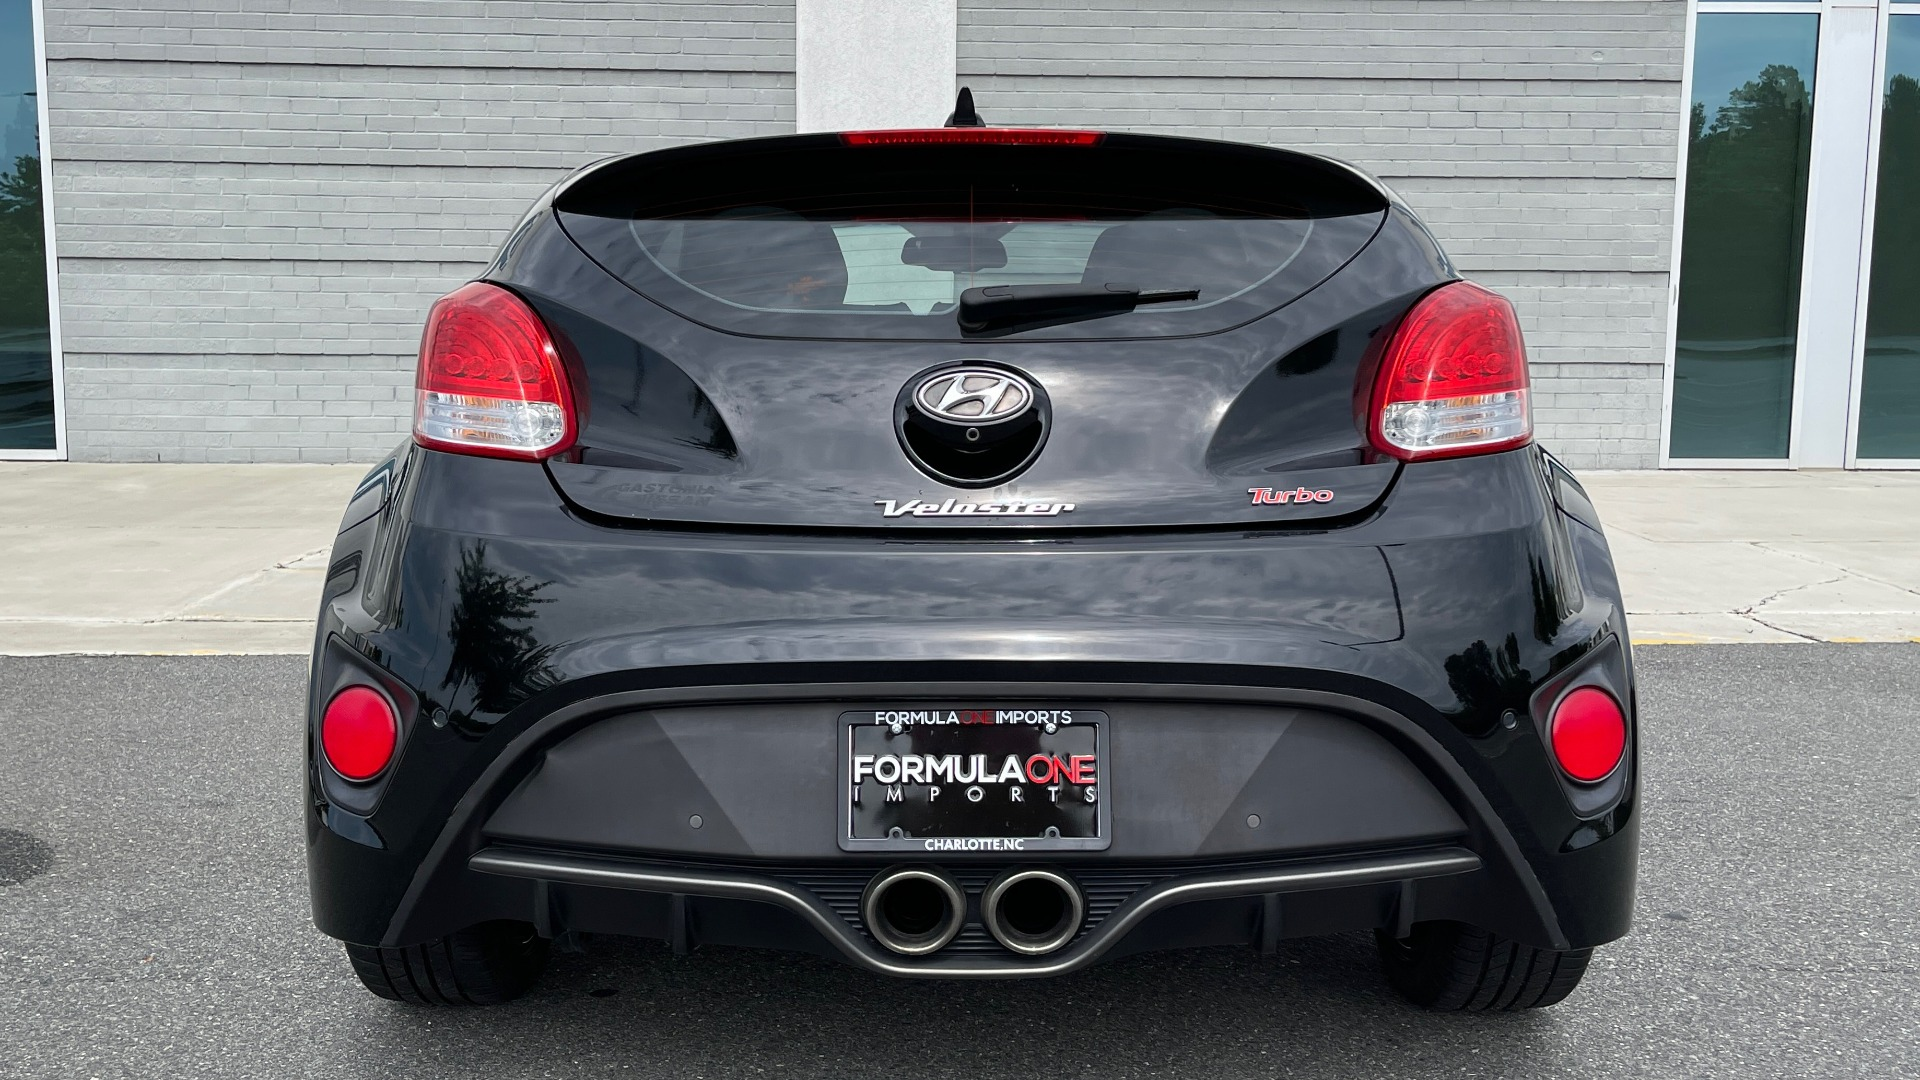 Used 2016 Hyundai VELOSTER TURBO 1.6L / AUTO / NAV / PANO-ROOF / REARVIEW for sale Sold at Formula Imports in Charlotte NC 28227 23